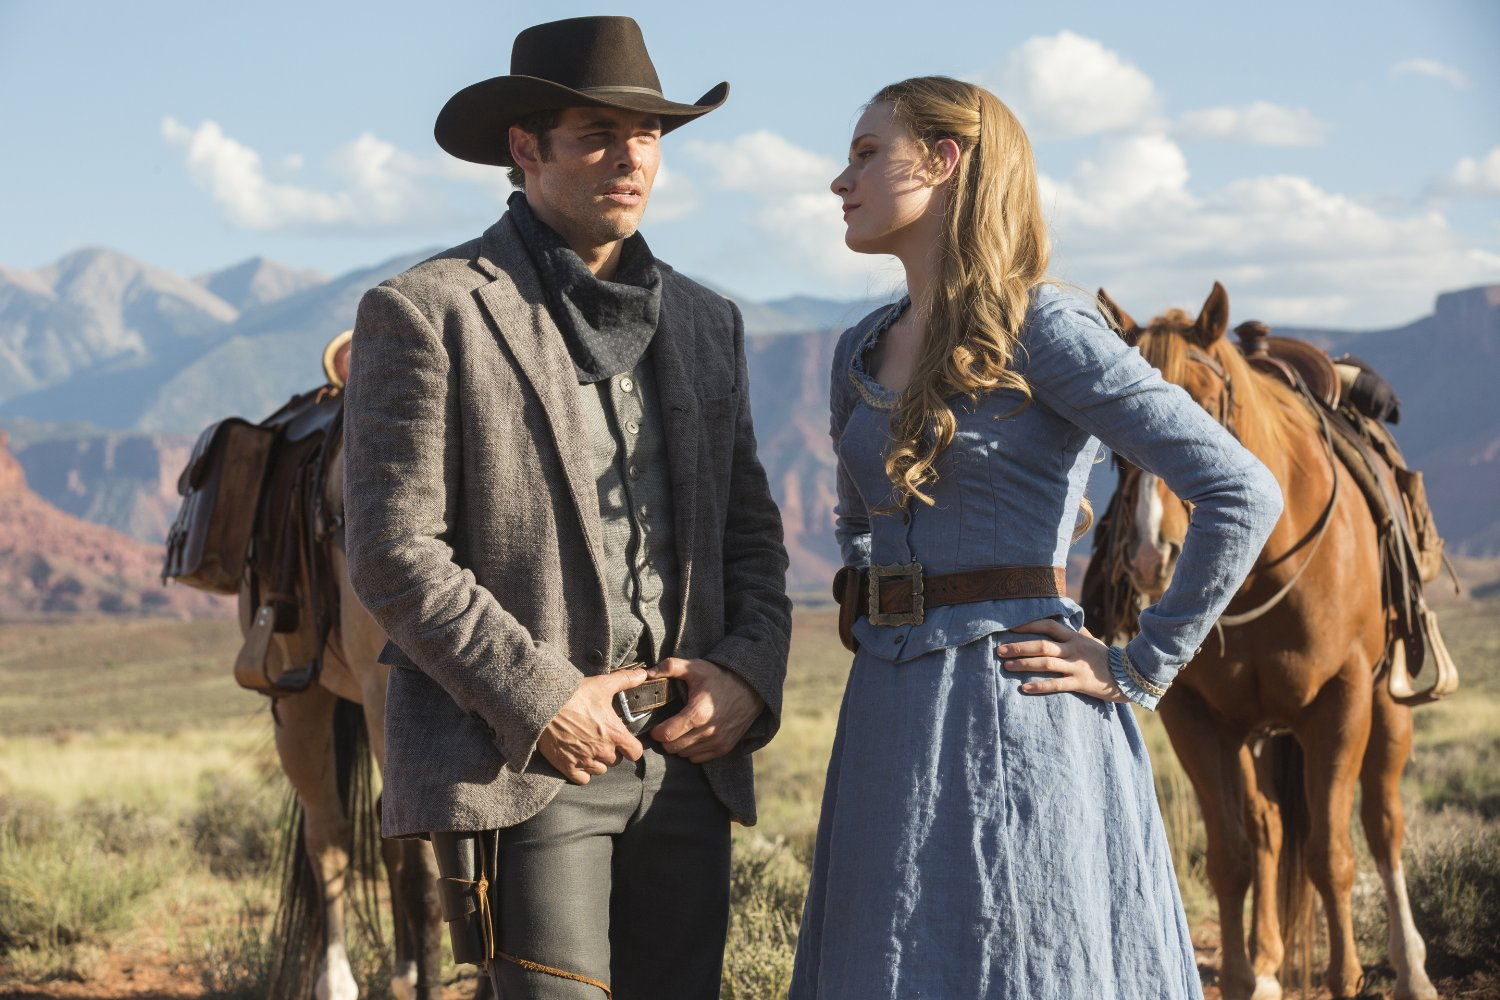 Westworld Teddy and Dolores